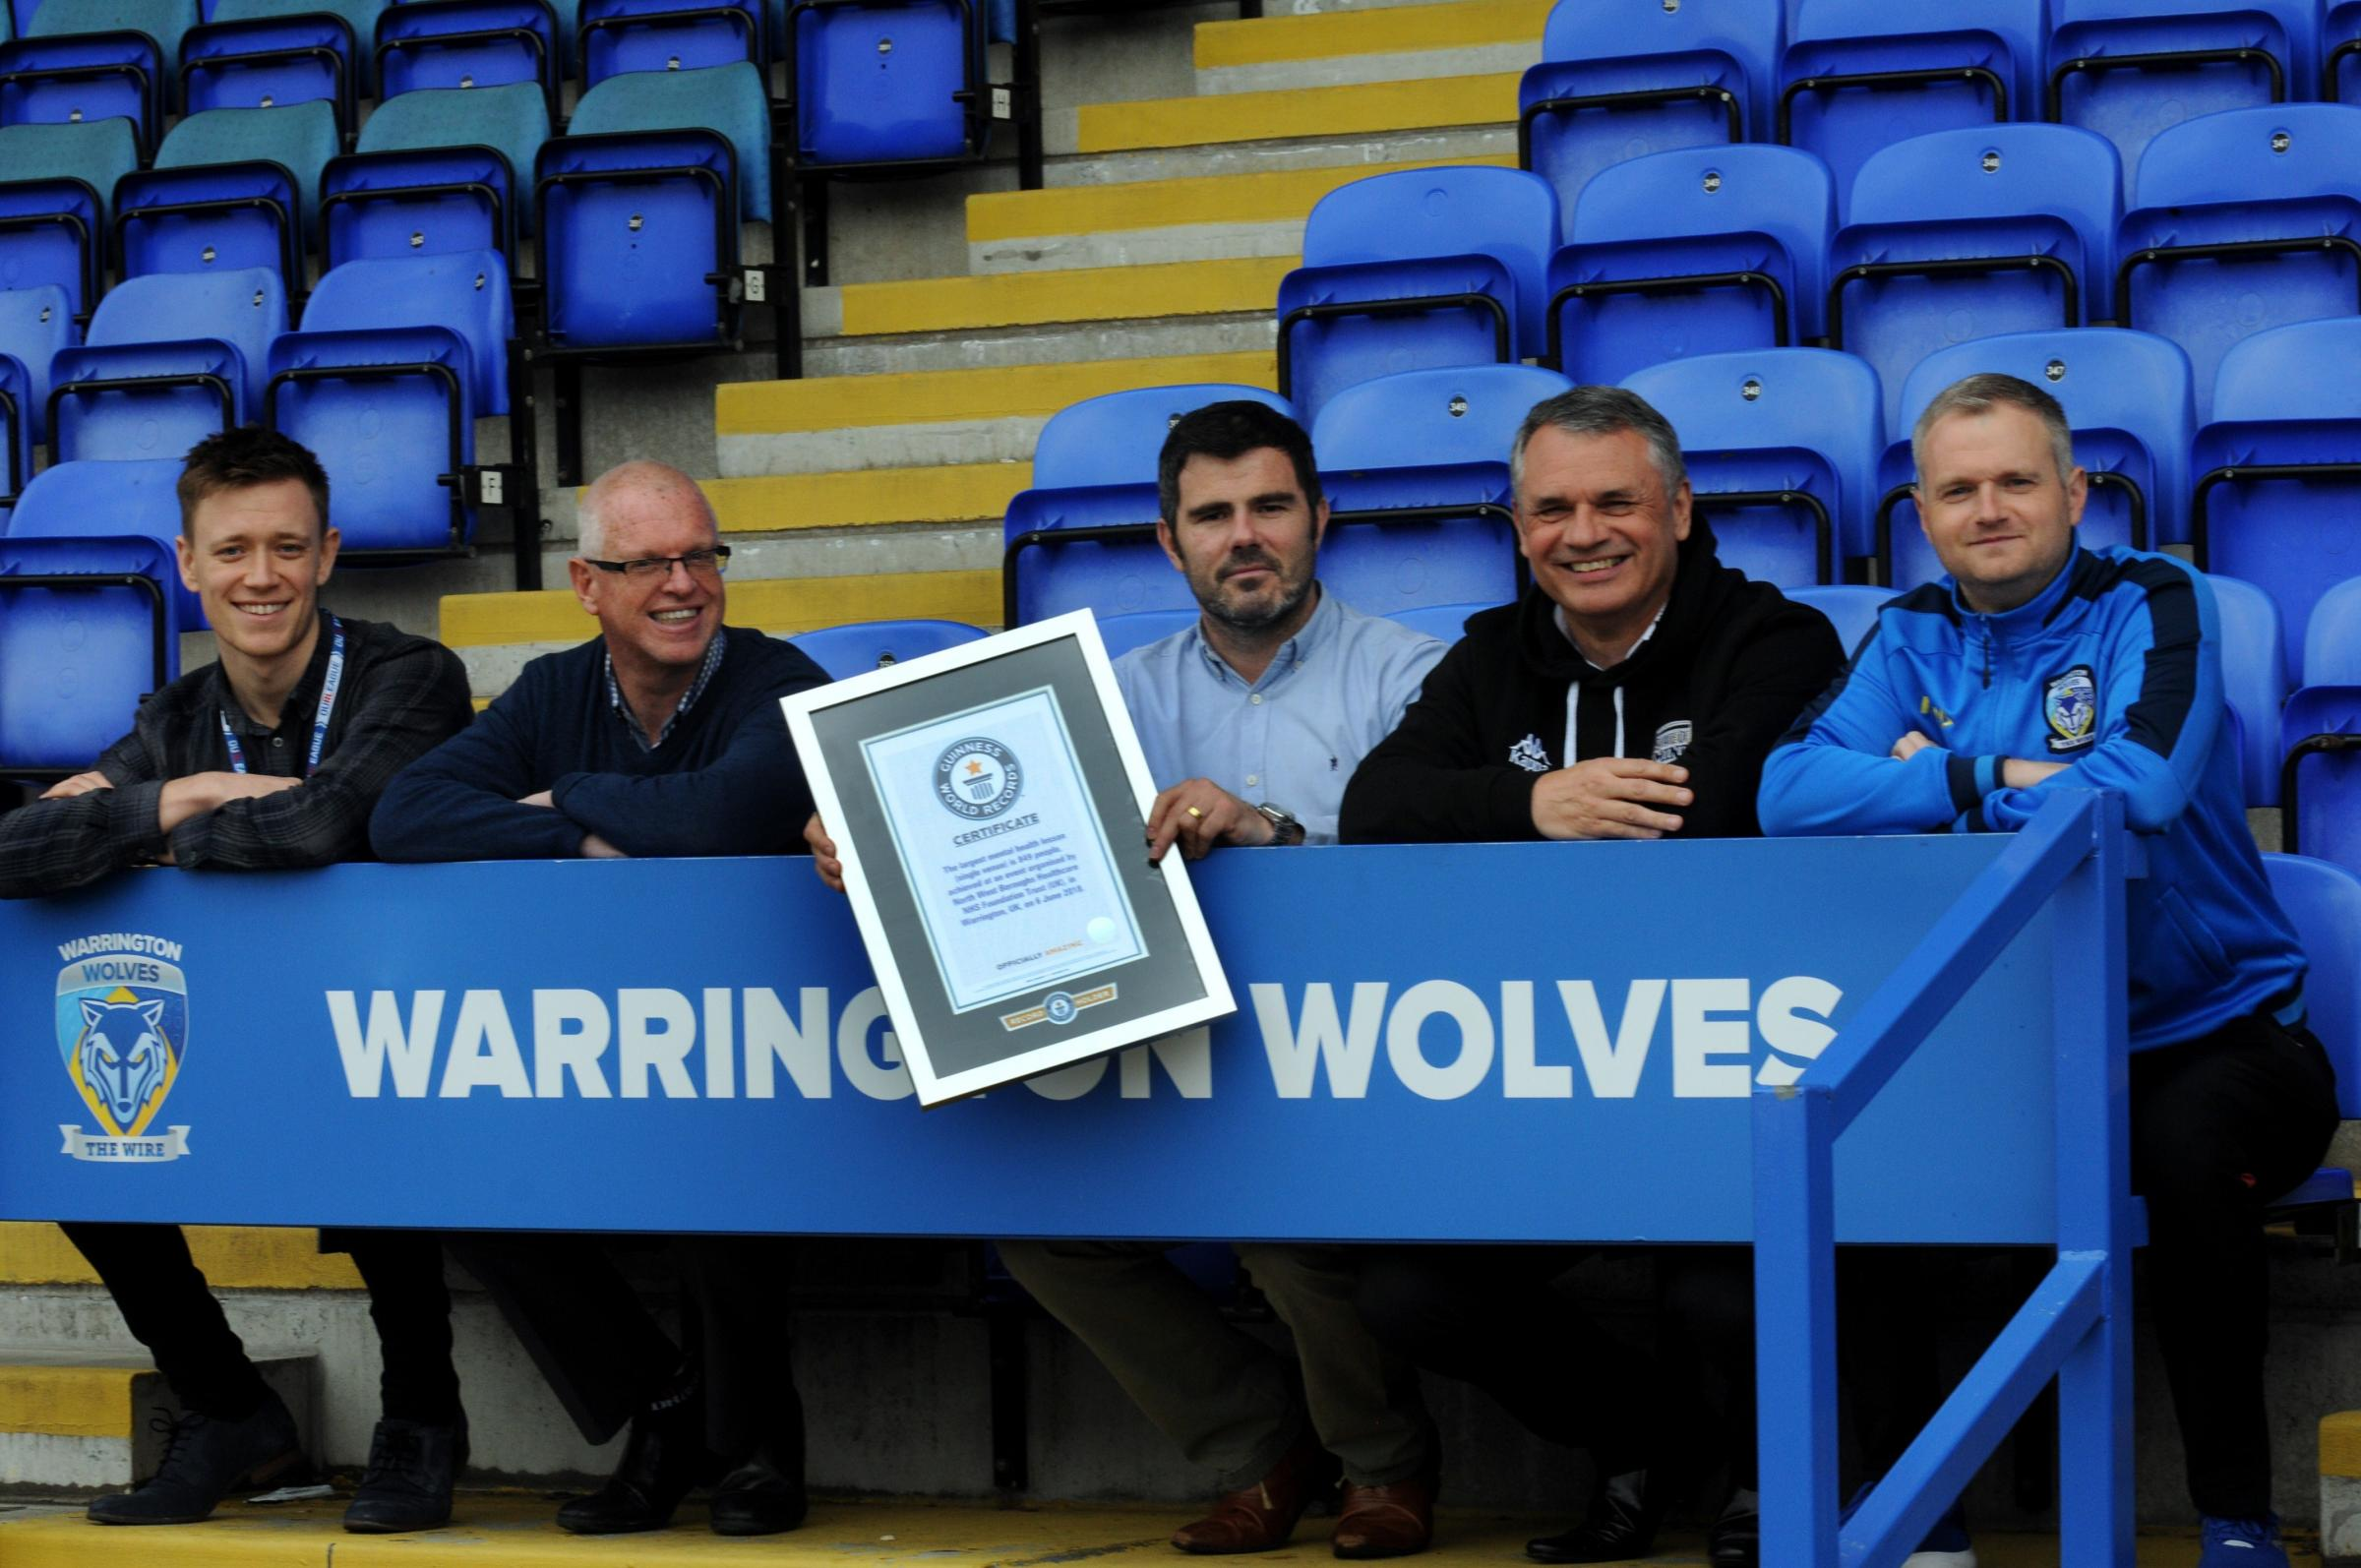 From left, Liam Parker, Rugby League Cares, Simon Barber, chef executive Northwest Boroughs Healthcare, Karl Fitzpatrick, Warrington Wolves chief executive, Dr Phil Cooper, nurse consultant, and James Howes from the Wolves Foundation